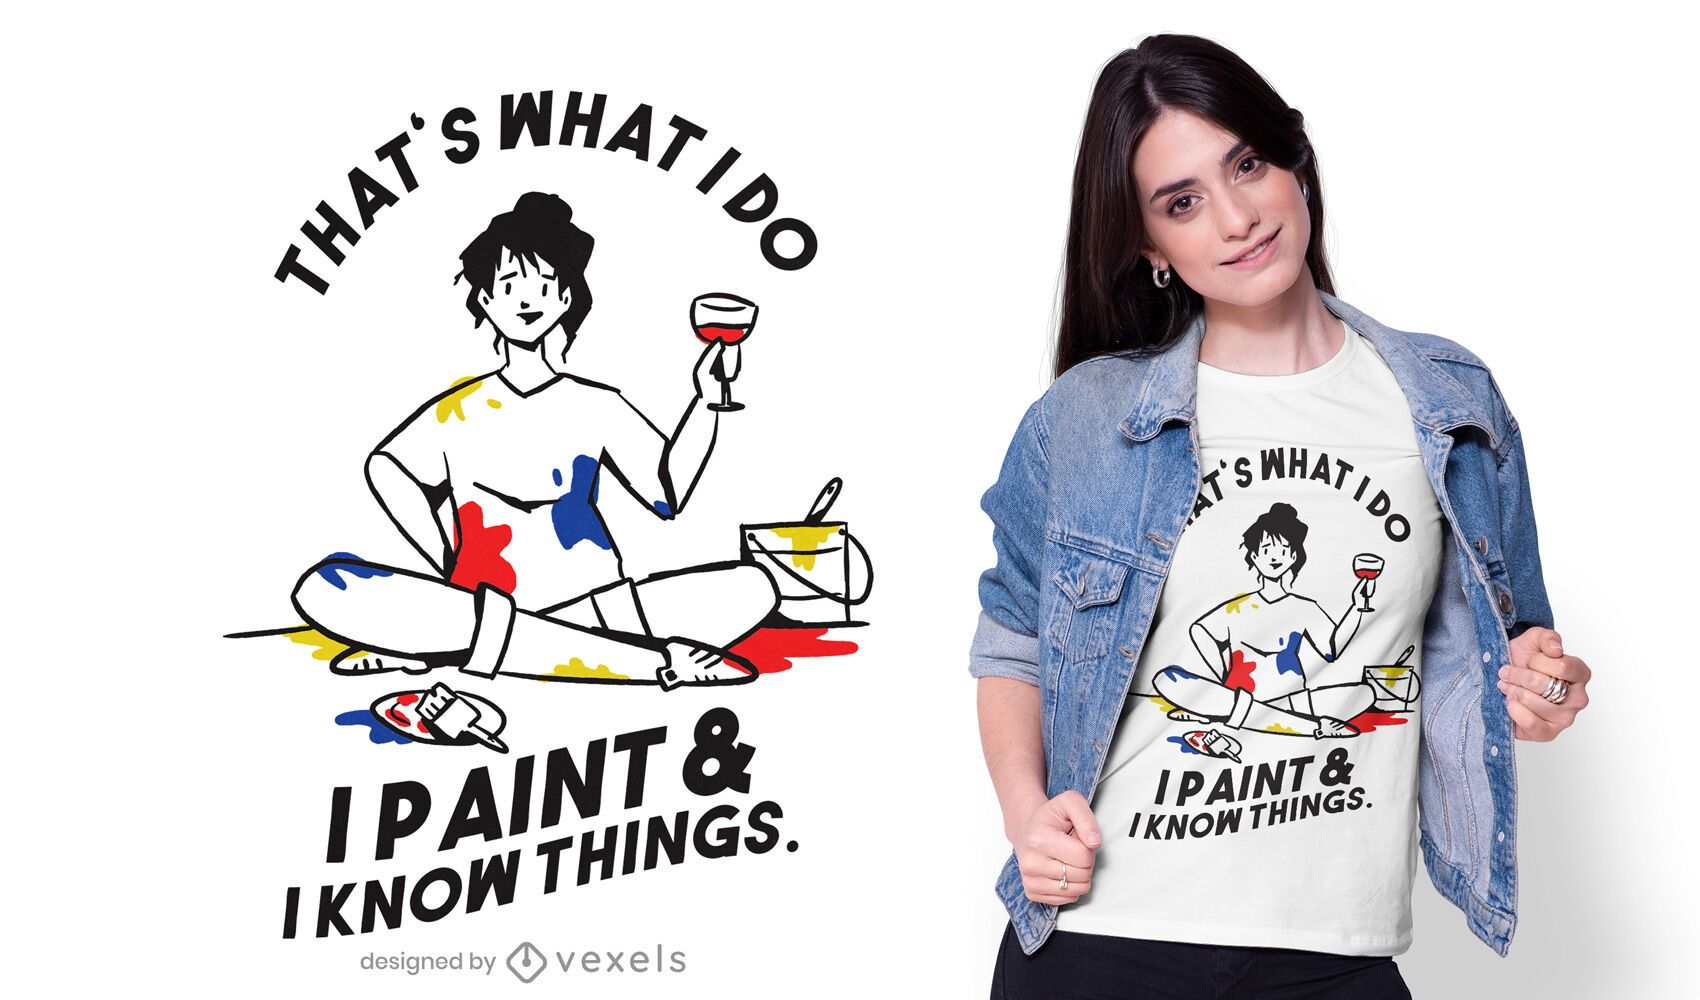 Paint & know things t-shirt design